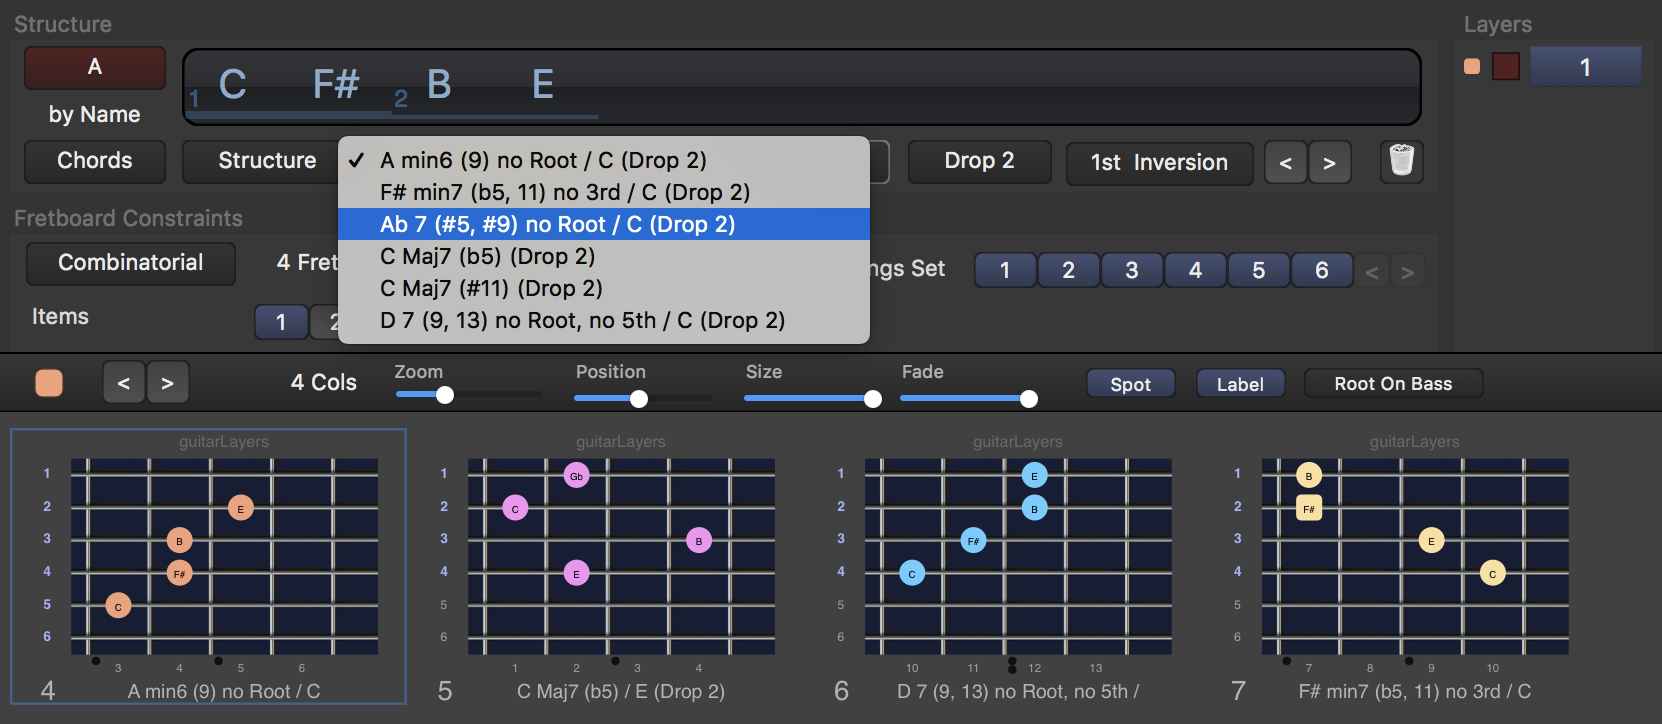 guitar learning software for scales, arpeggios and chords